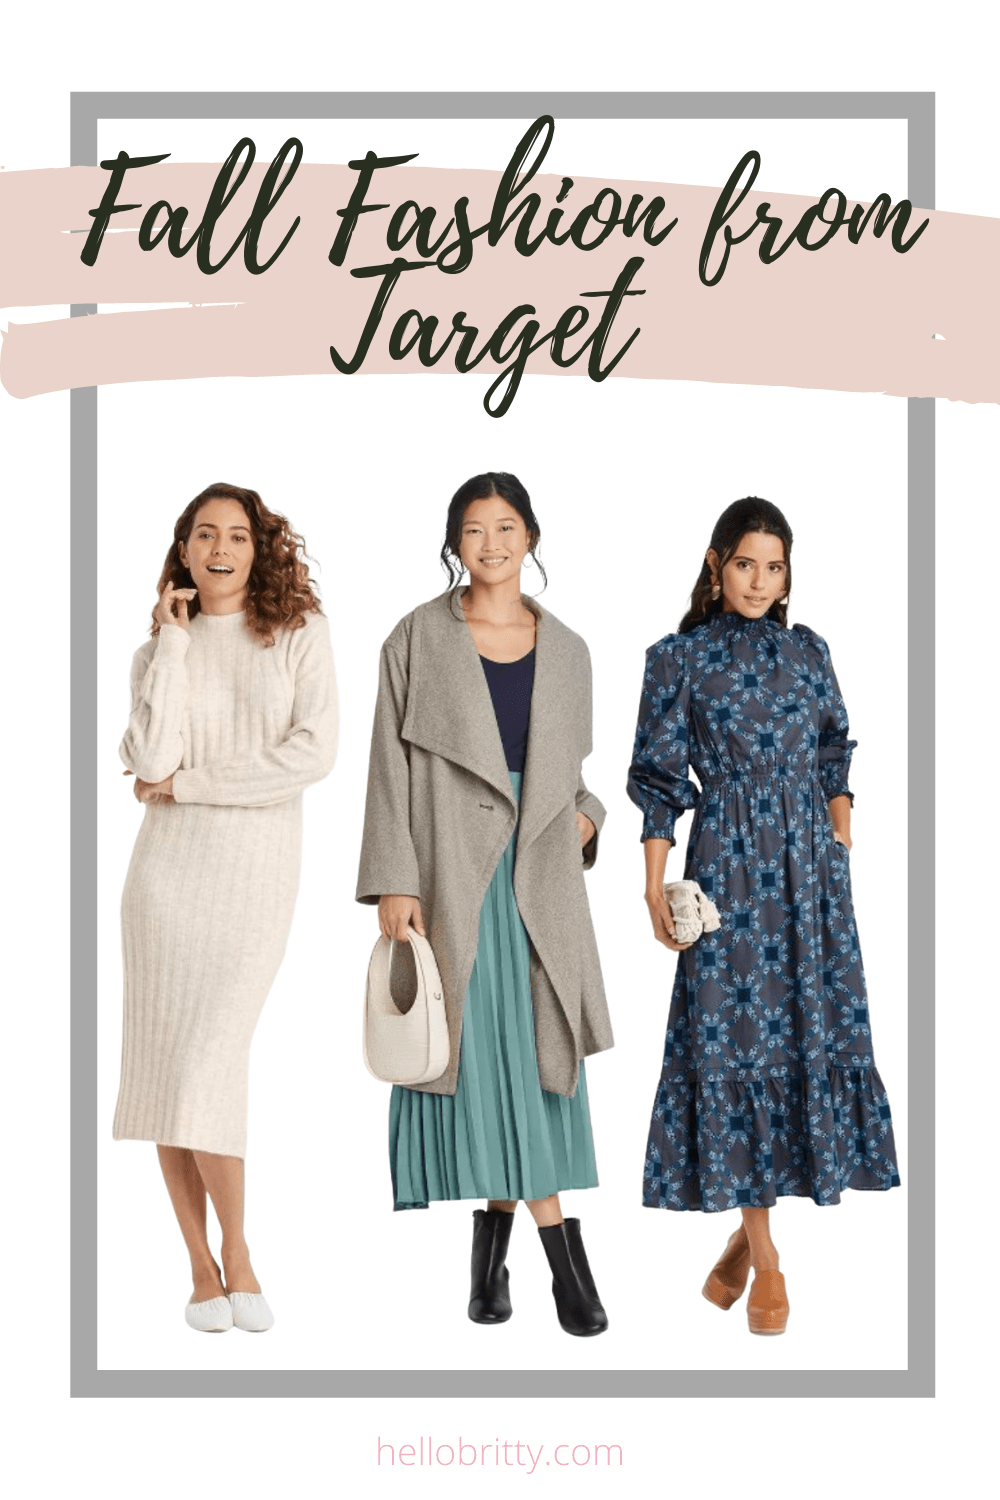 Looking for the best fall jackets, sweaters, dresses and boots at prices that can't be beat? Look no farther than Target! I put together a list of my favorite items and hope you can find some inspiration - enjoy!